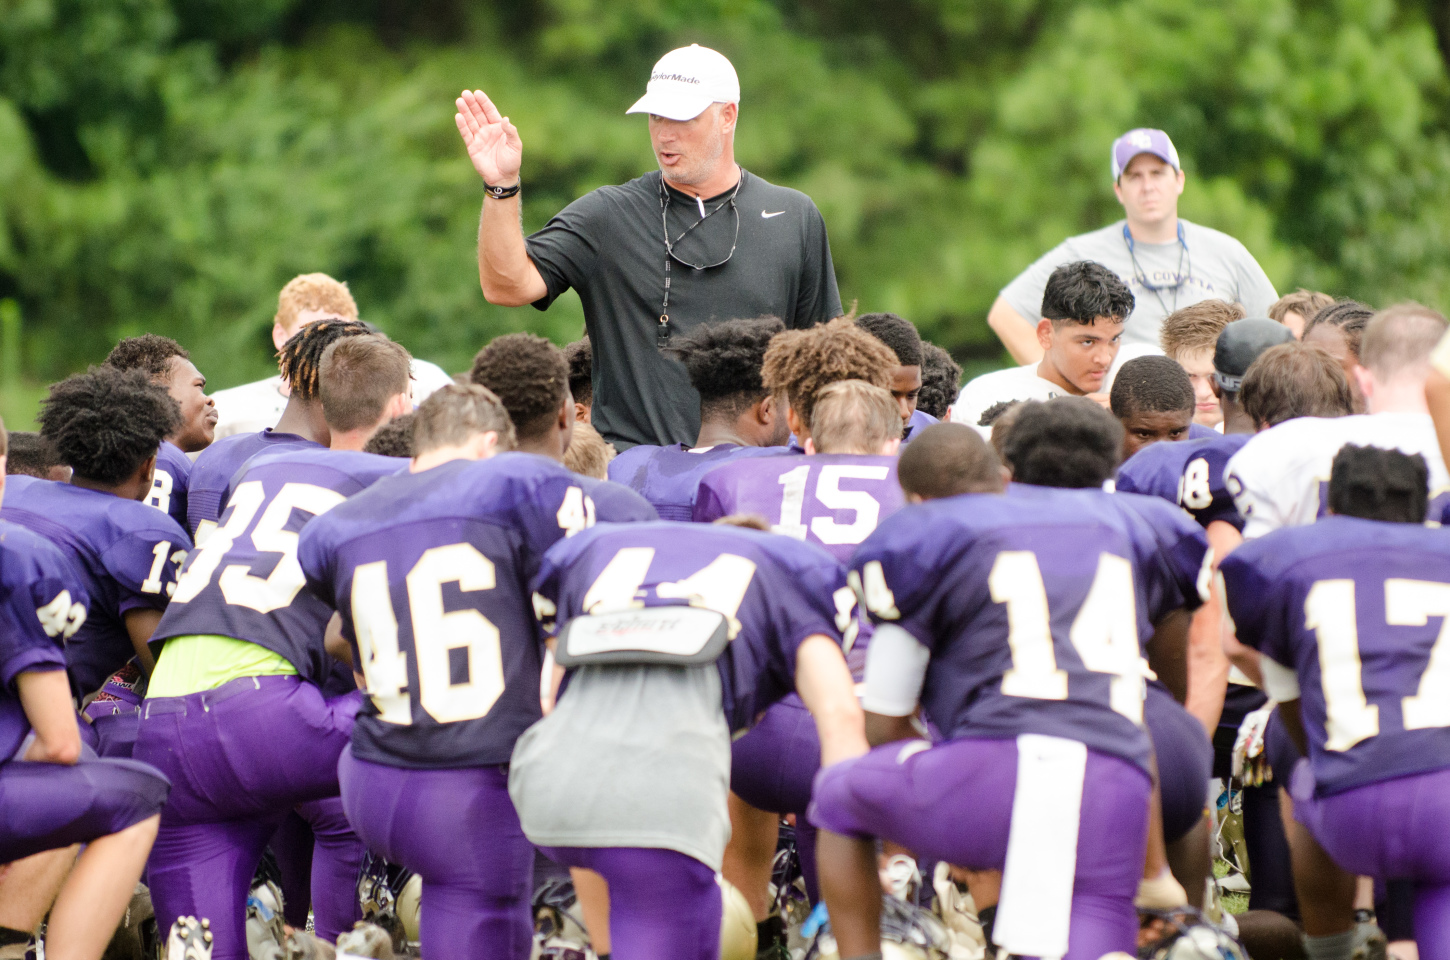 East Coweta takes the field for the first time under head coach John Small on Friday against Lovejoy